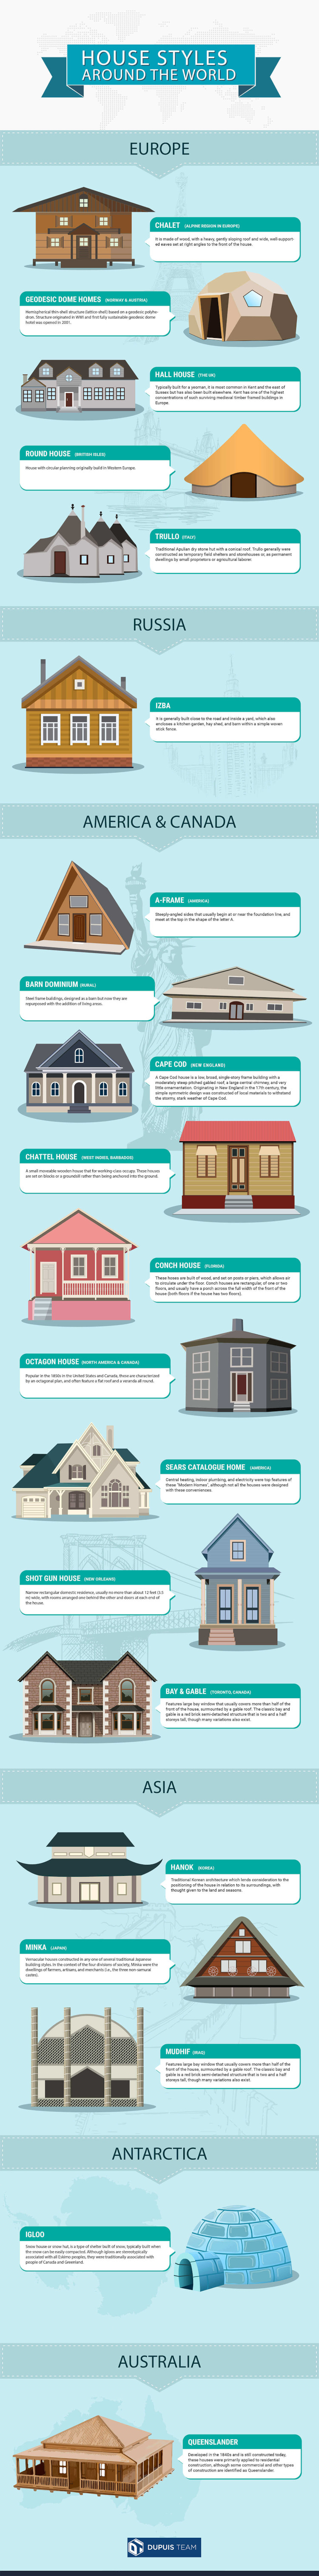 House Styles from Around the World Infographic from Dupuis Team